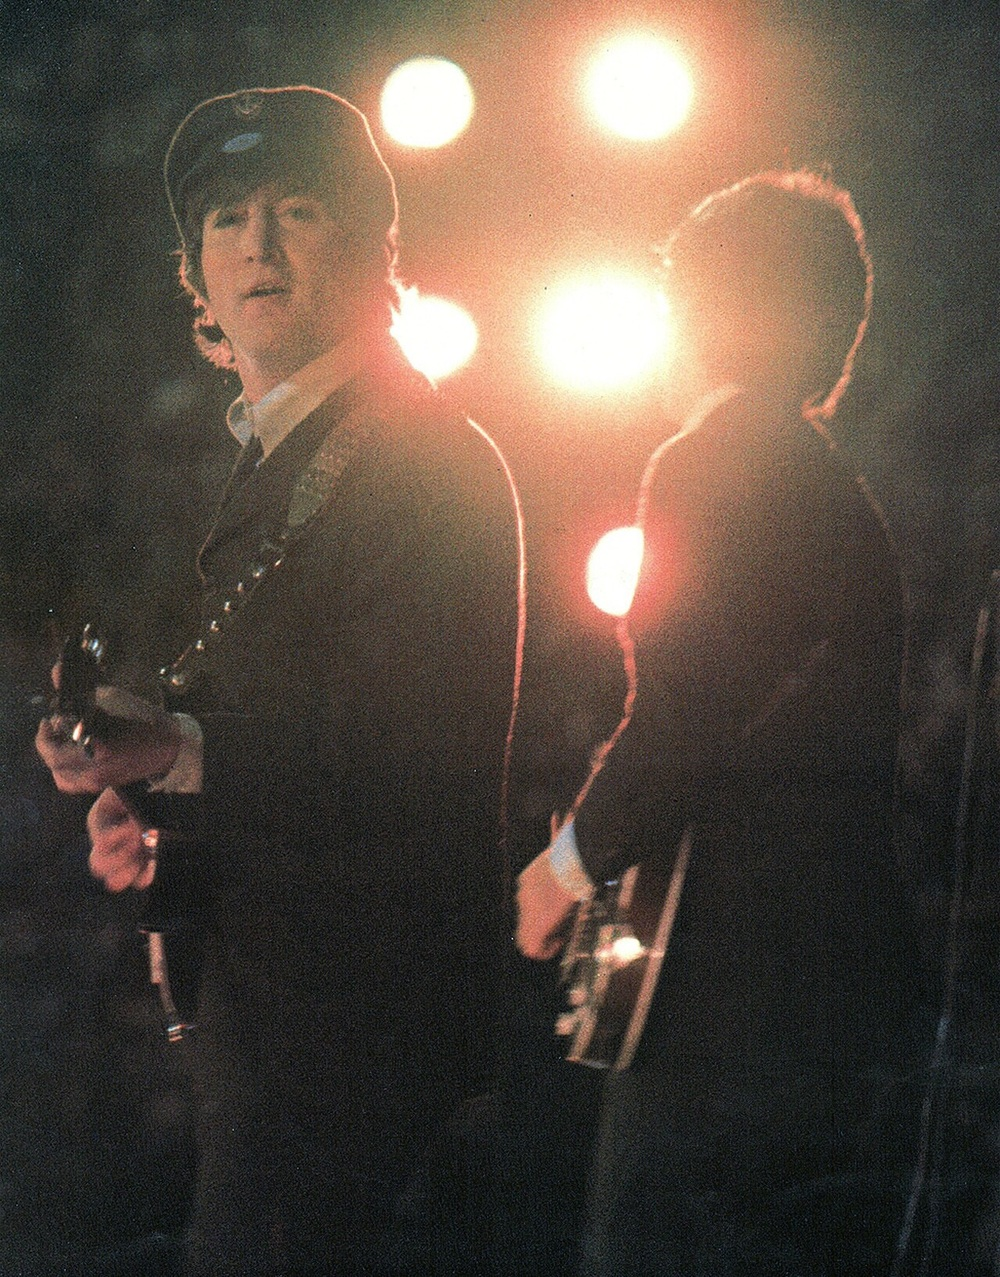 John Lennon and Paul McCartney performing in Italy, 1965.